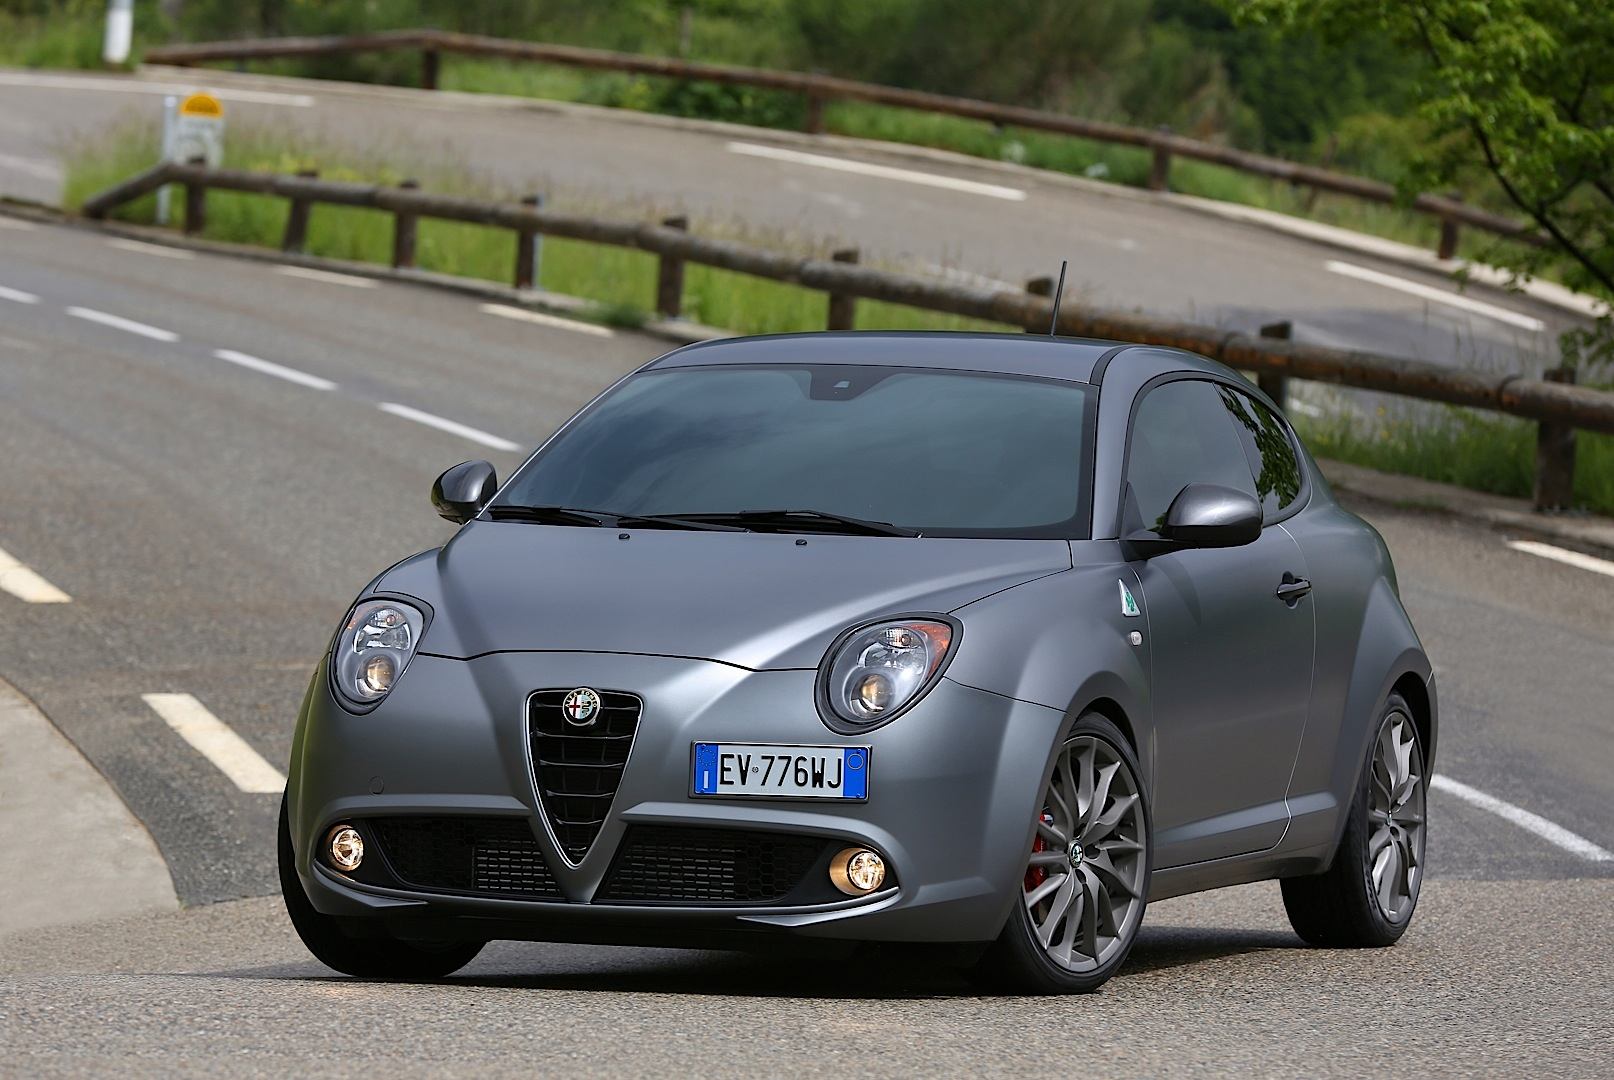 alfa romeo giulietta mito quadrifoglio verde uk pricing. Black Bedroom Furniture Sets. Home Design Ideas